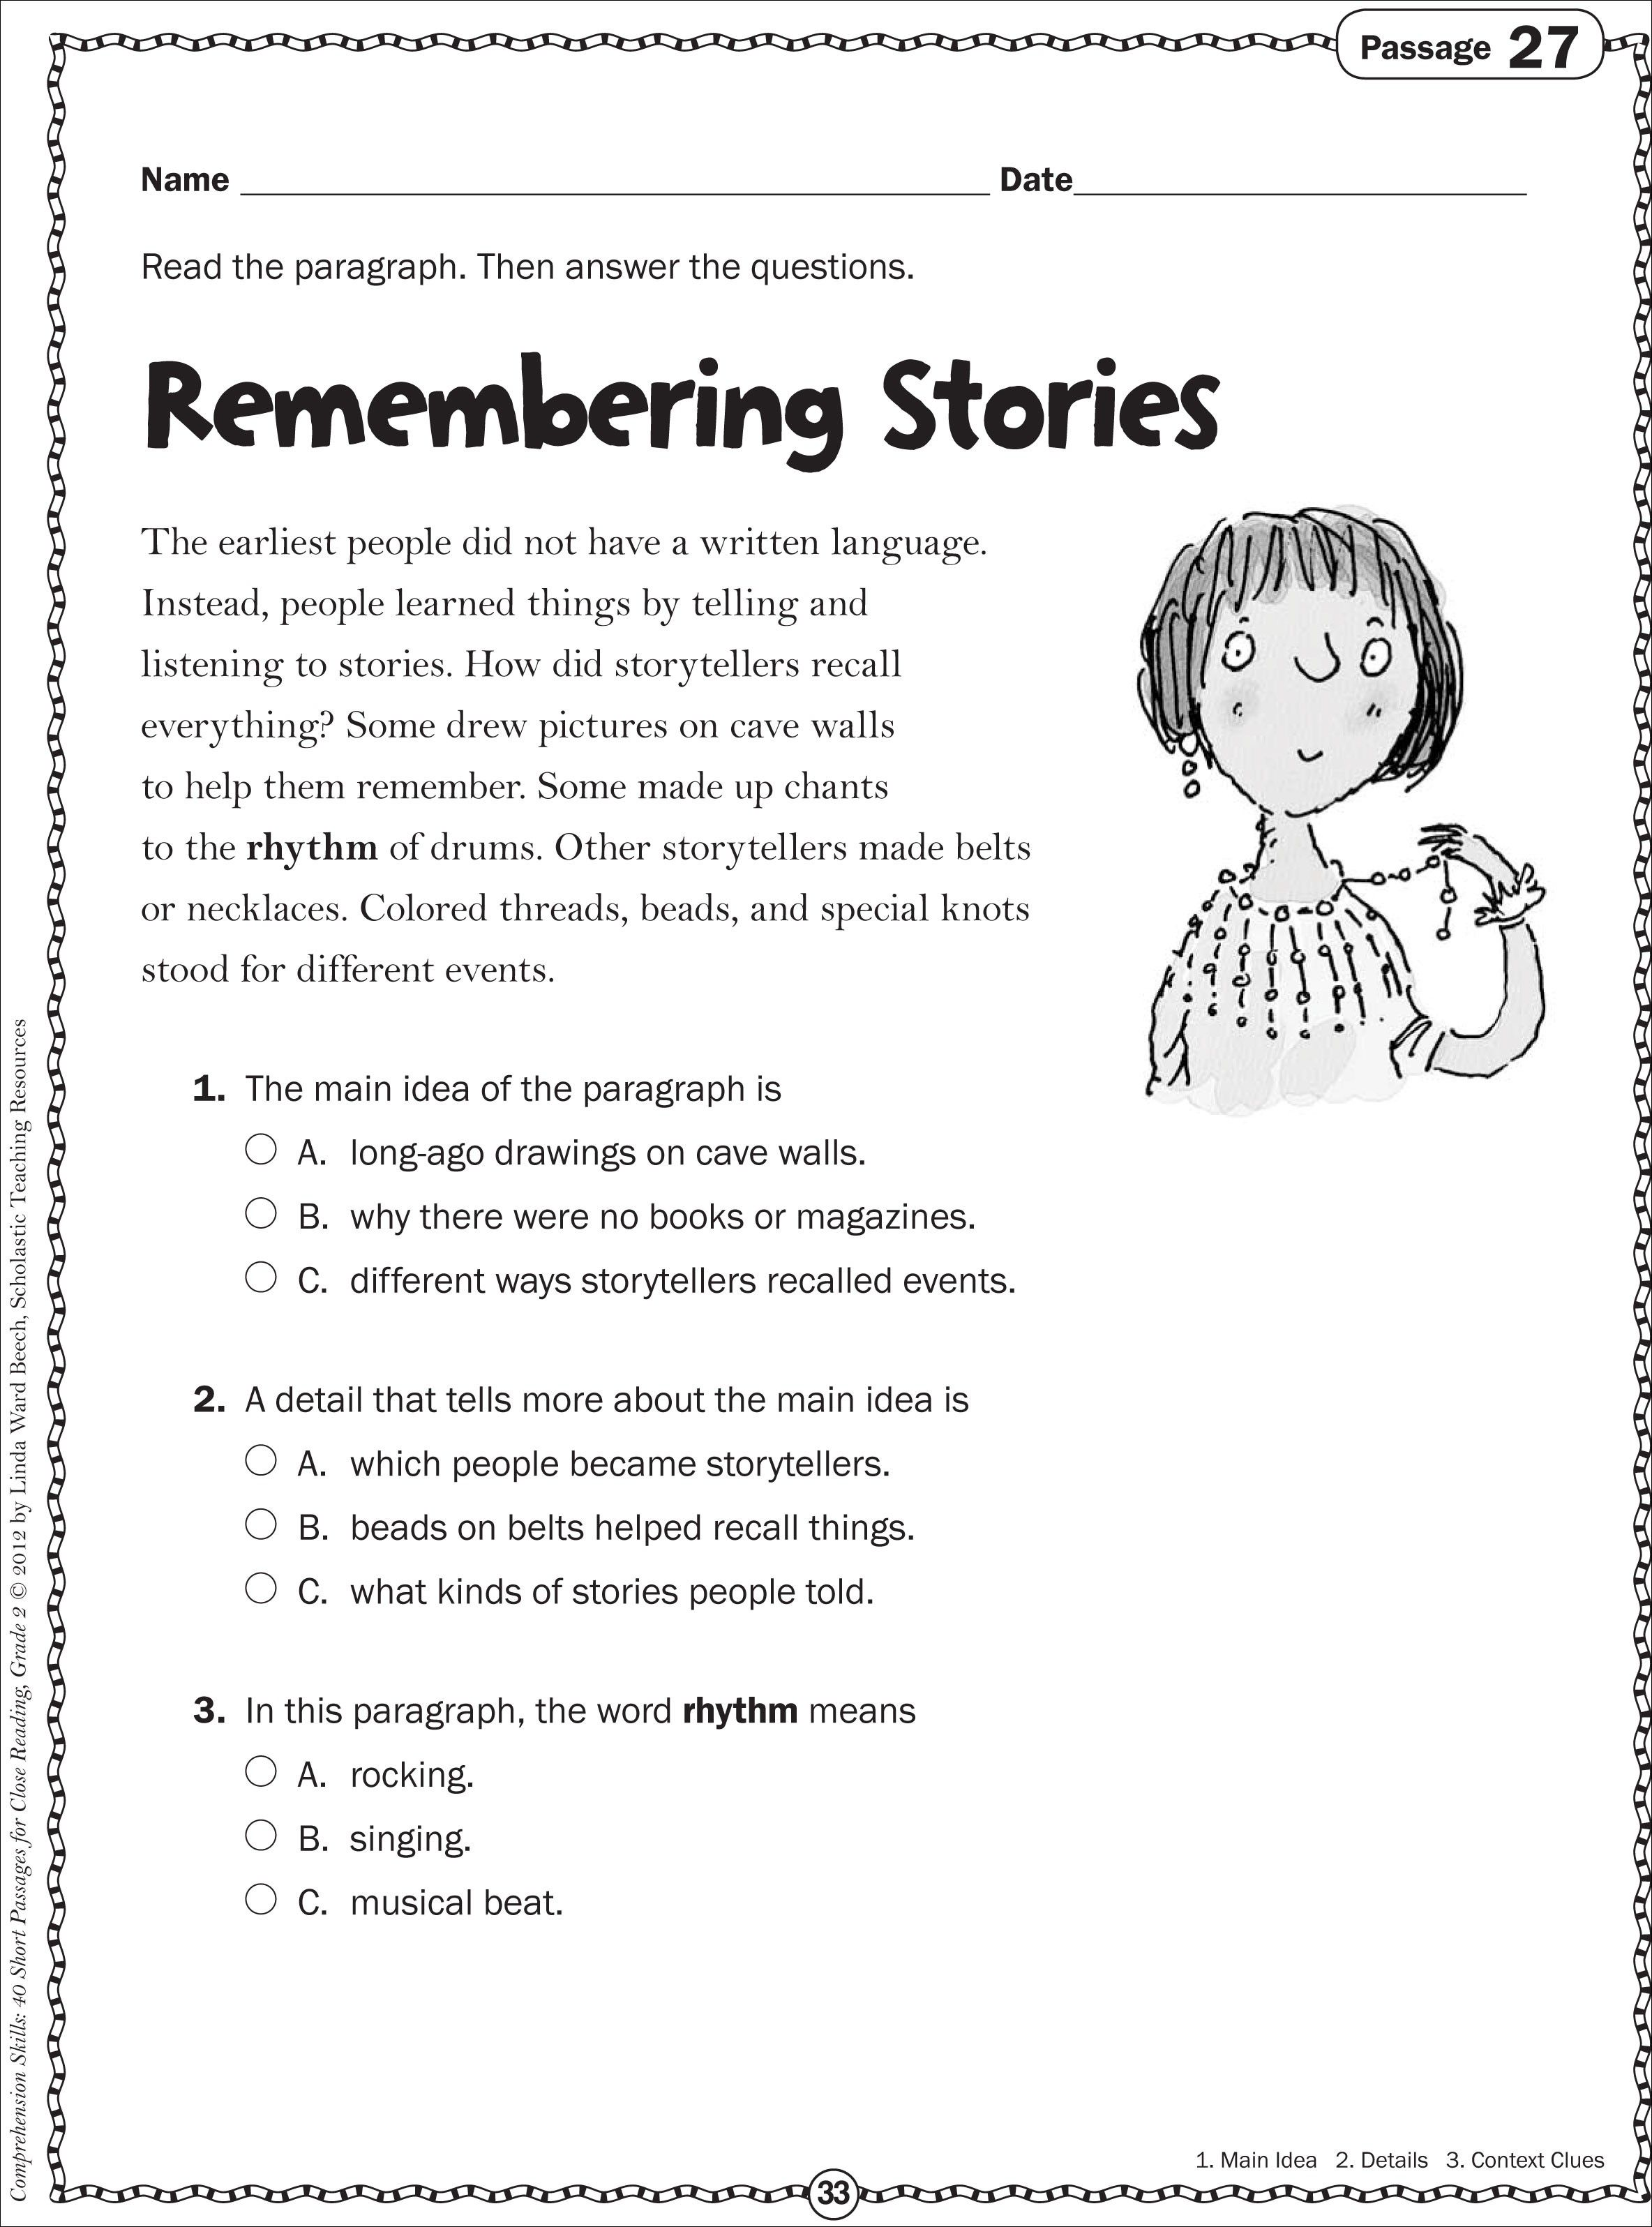 Worksheet Reading Comprehension For 1st Grade 1st grade reading comprehension worksheets pdf davezan passages first math